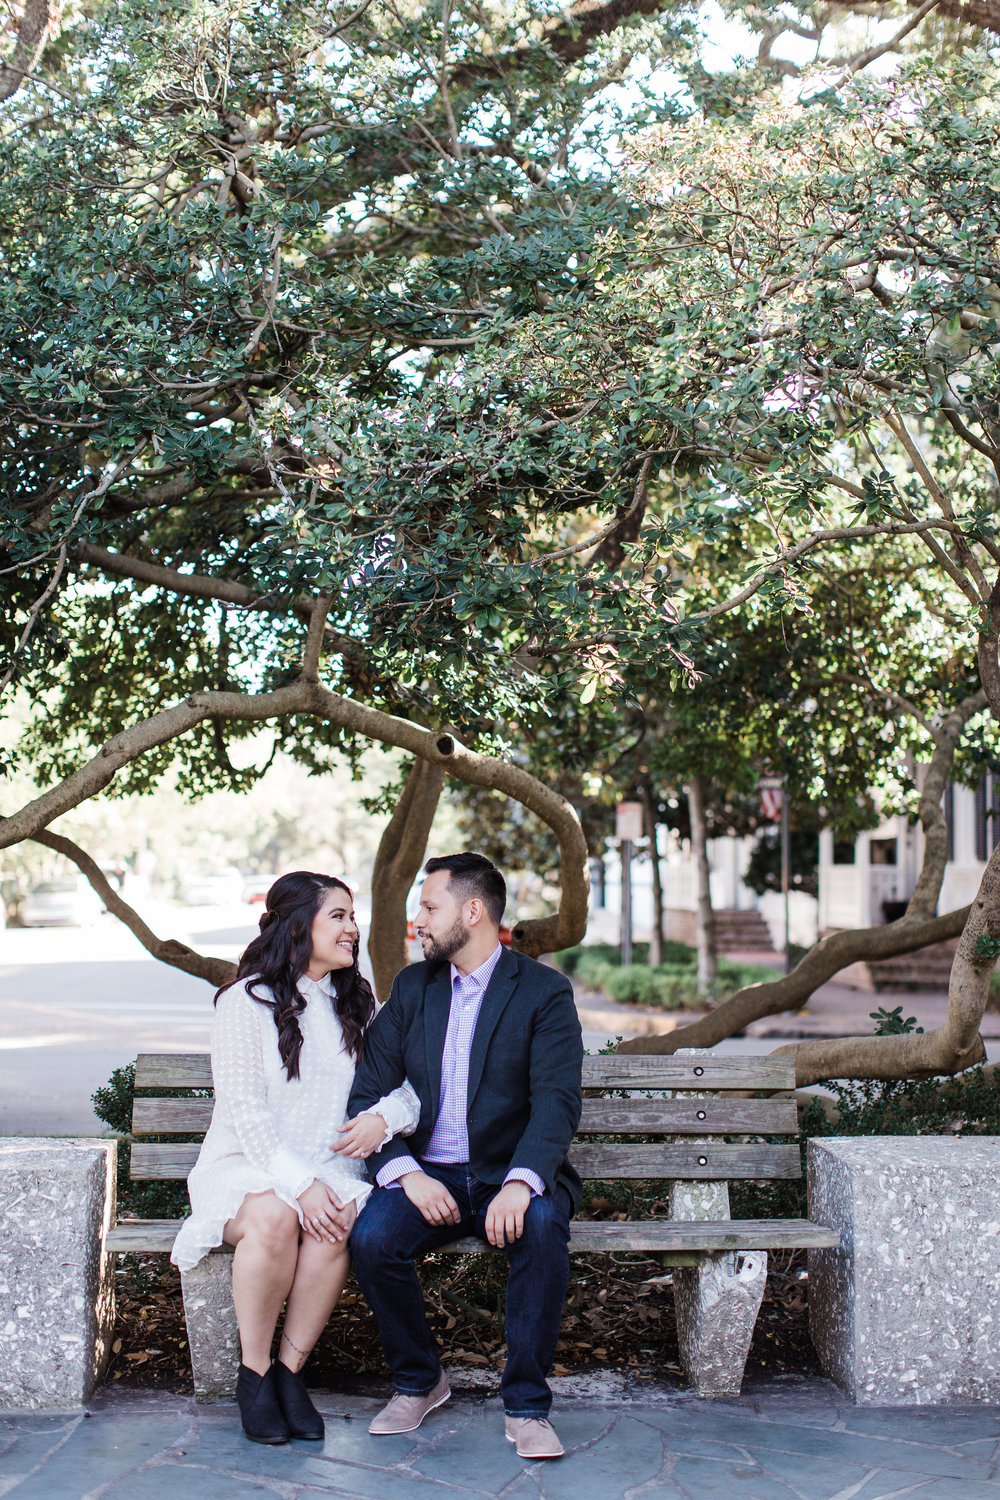 apt-b-photography-Savannah-wedding-photographer-savannah-engagement-photographer-historic-savannah-engagement-savannah-weddings-hilton-head-wedding-photographer-hilton-head-engagement-2.jpg